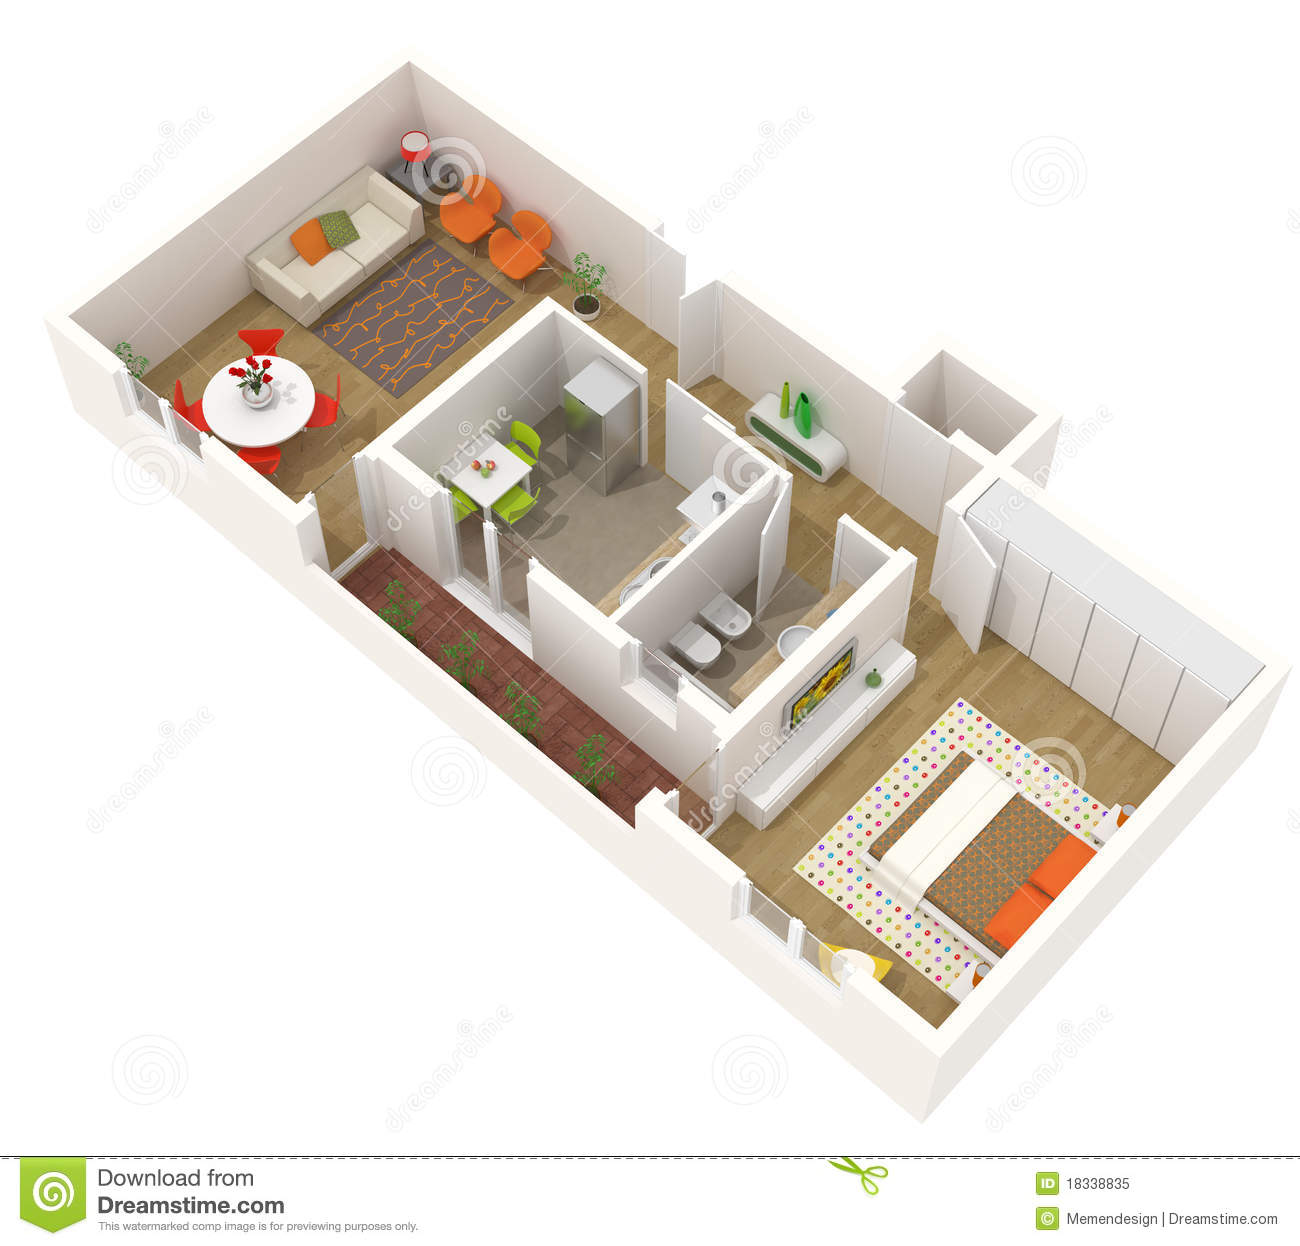 Apartment design 3d floor plan stock illustration for Small house plan design 3d